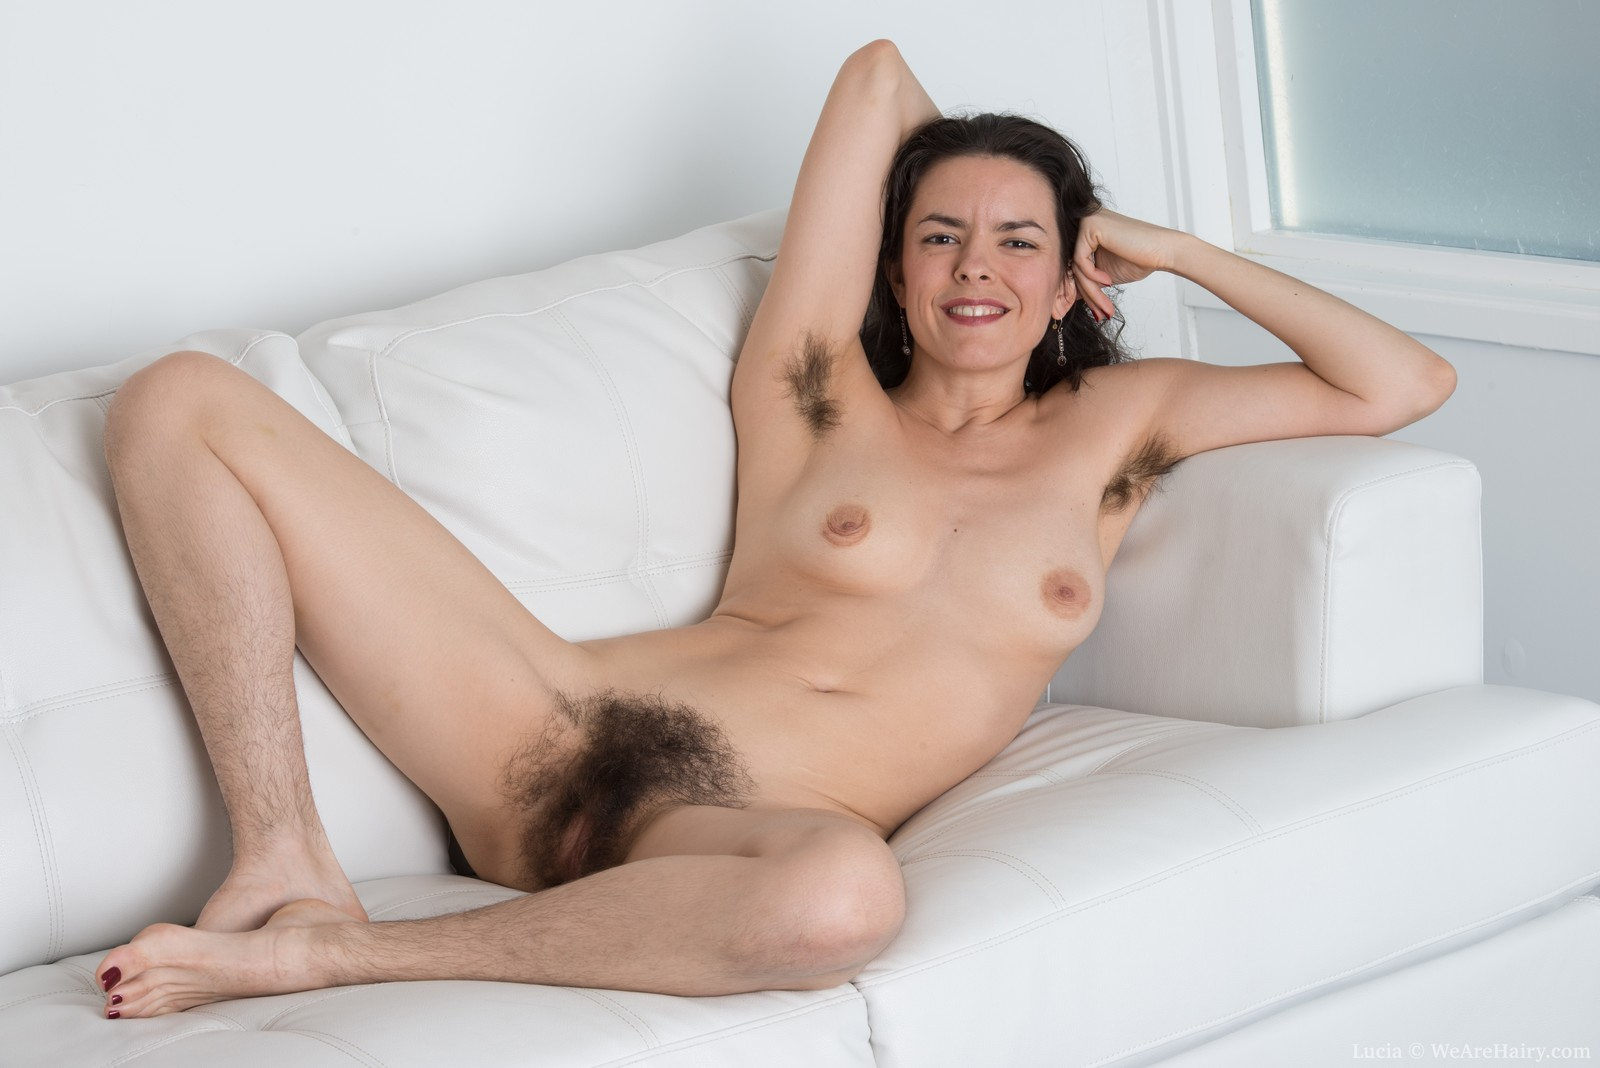 Sunshine strips naked to show off very hairy body